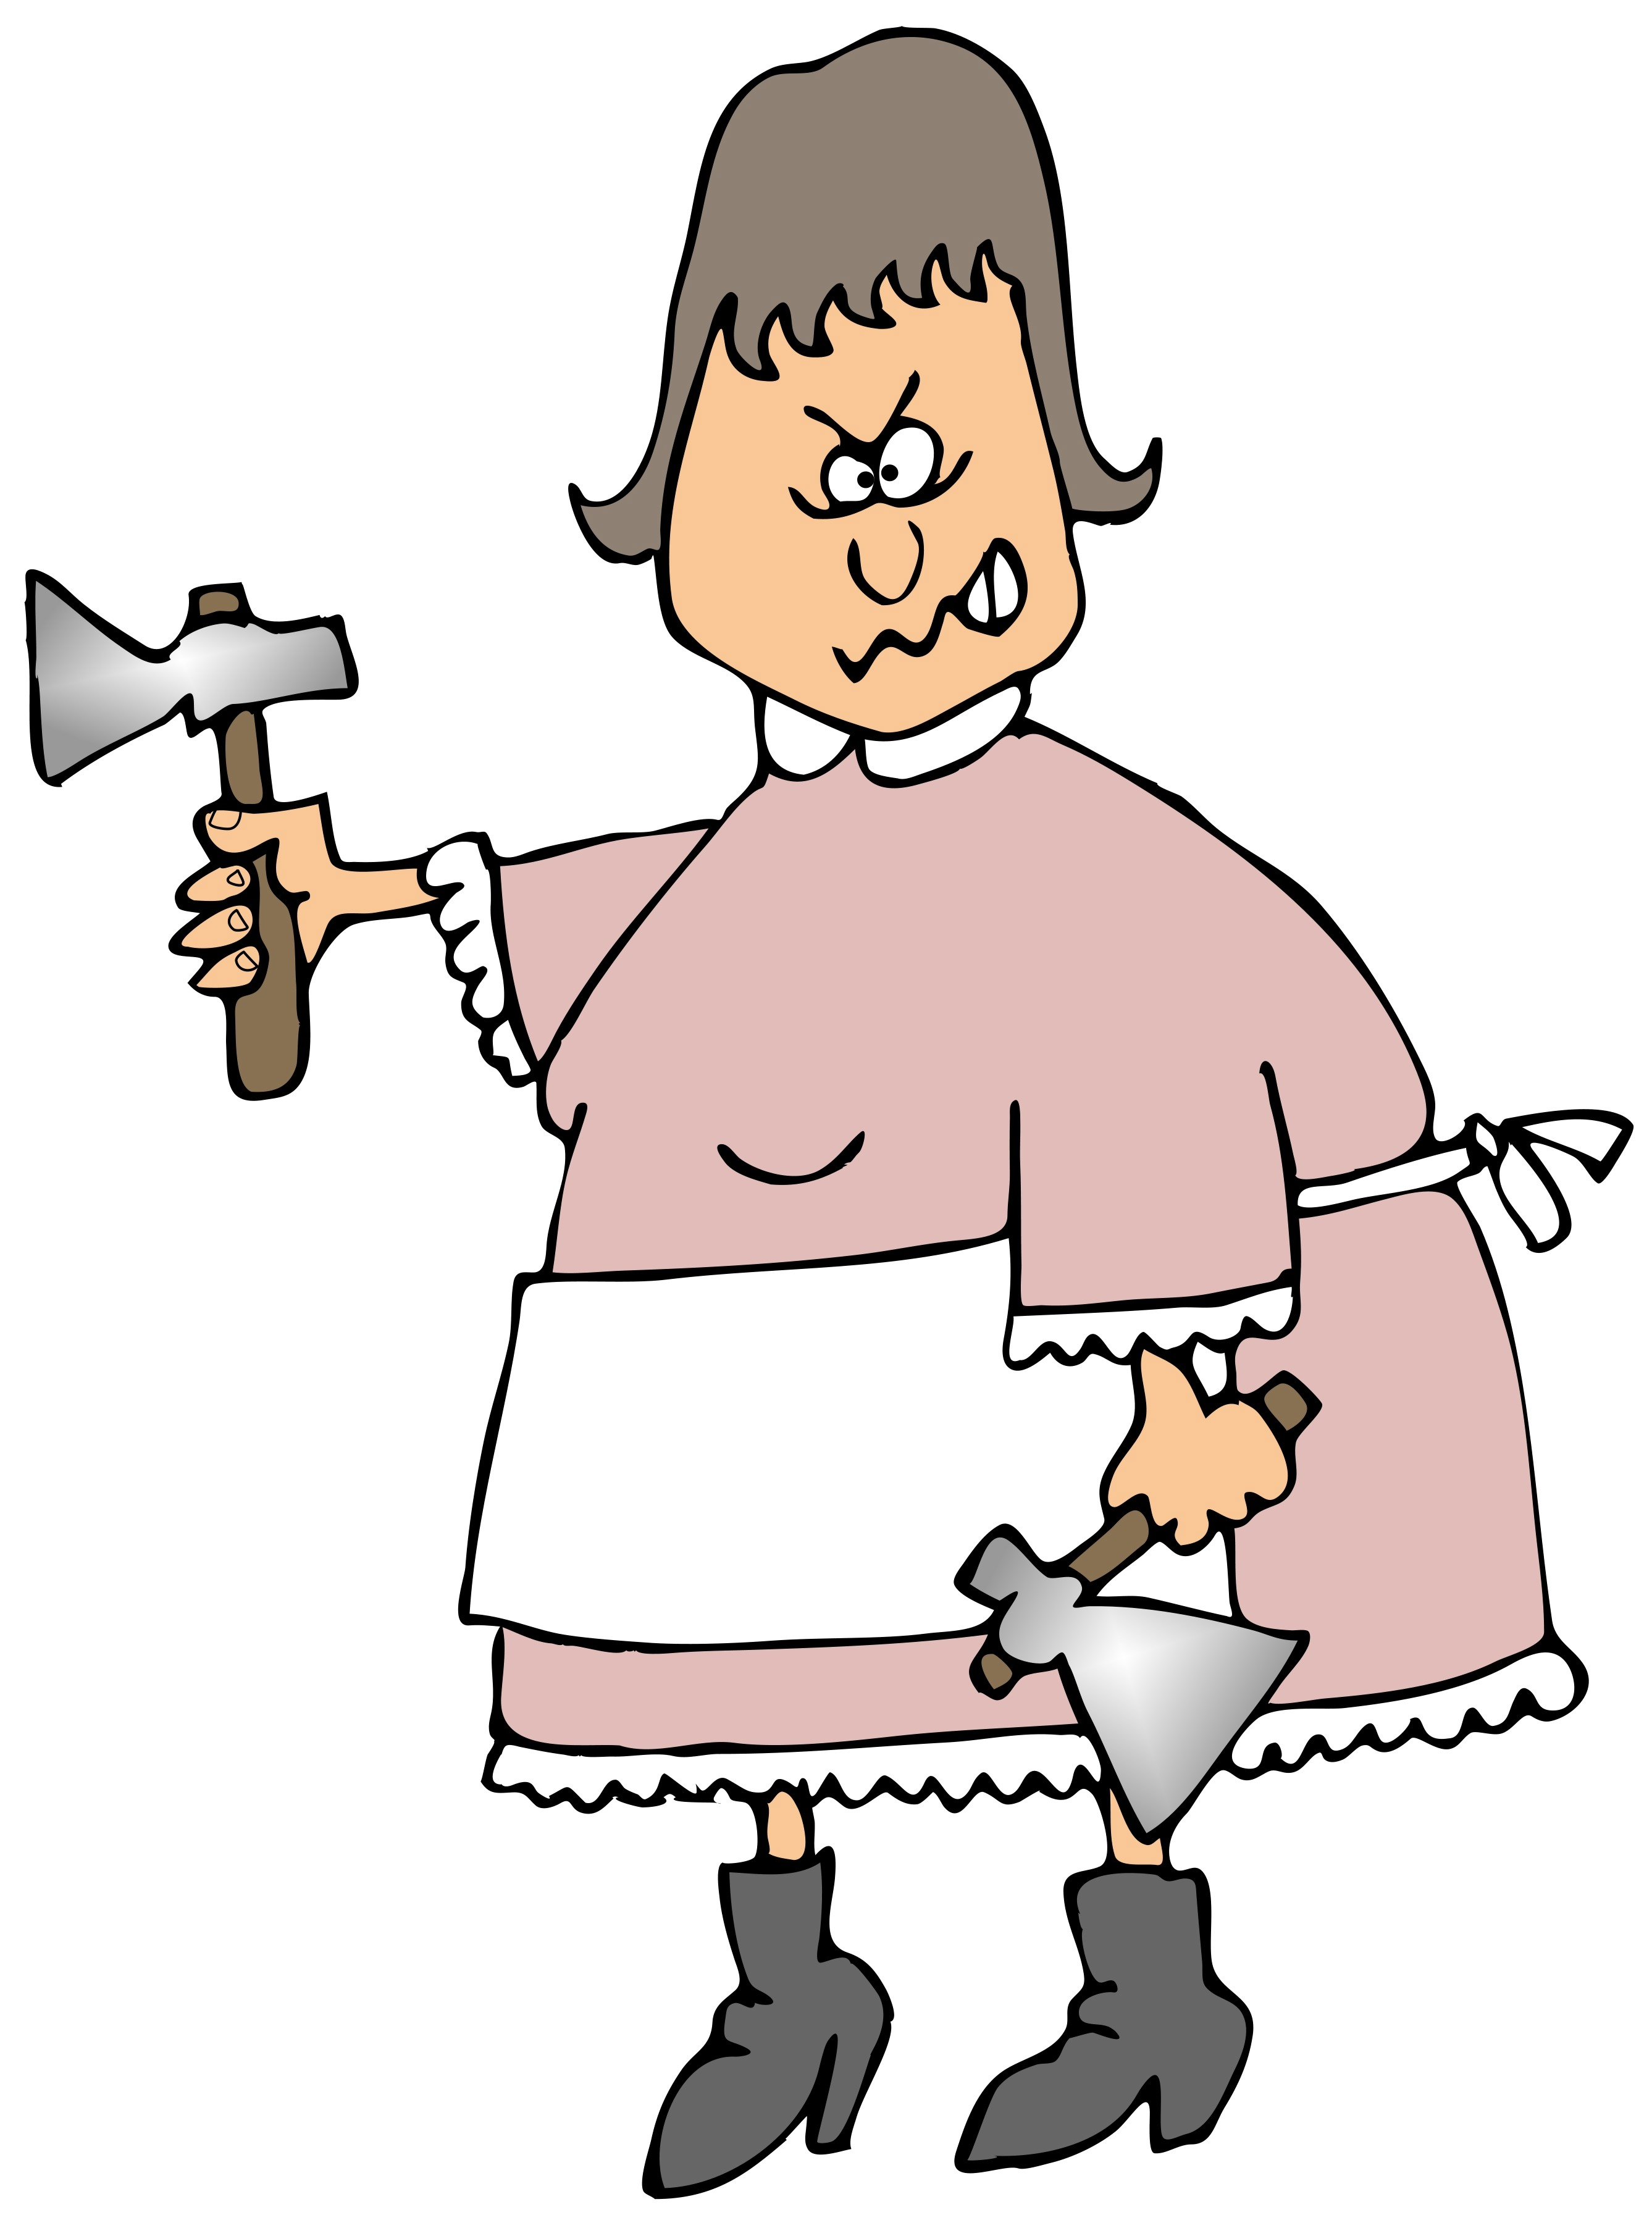 Cartoon Crazy Fat Woman With Two Axes Free Image